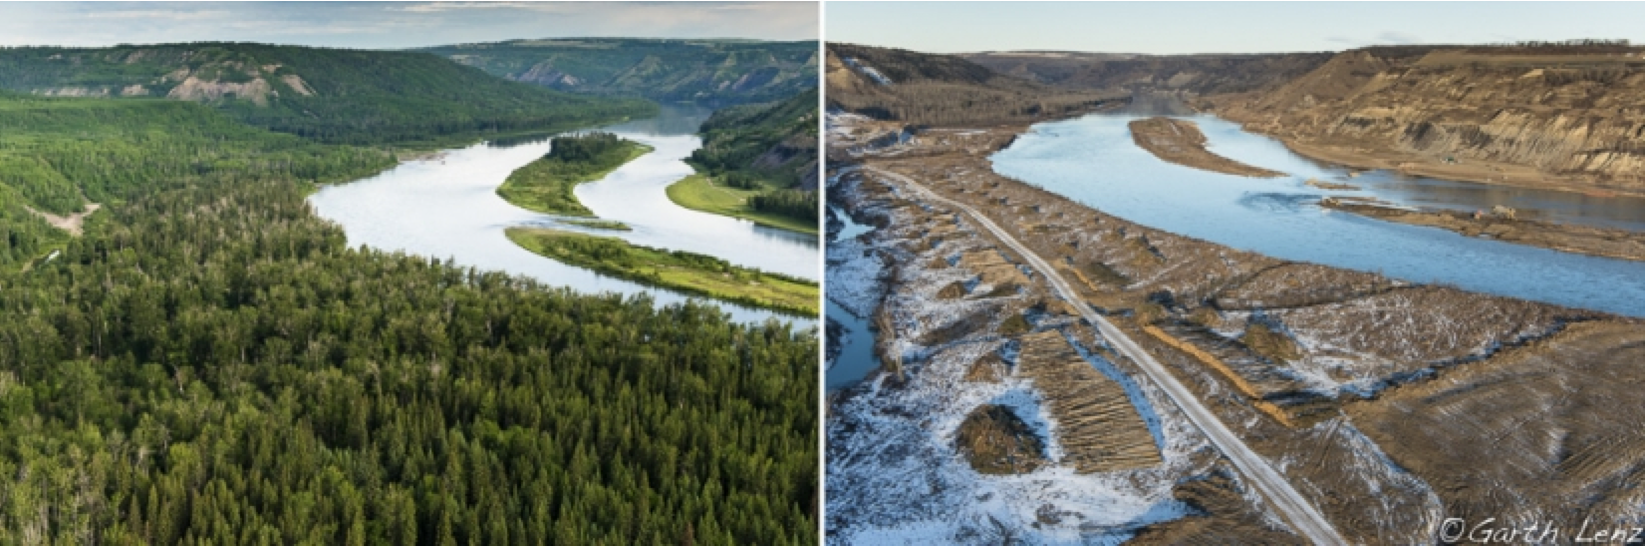 The Peace River Valley before and after clearing forest for Site C.